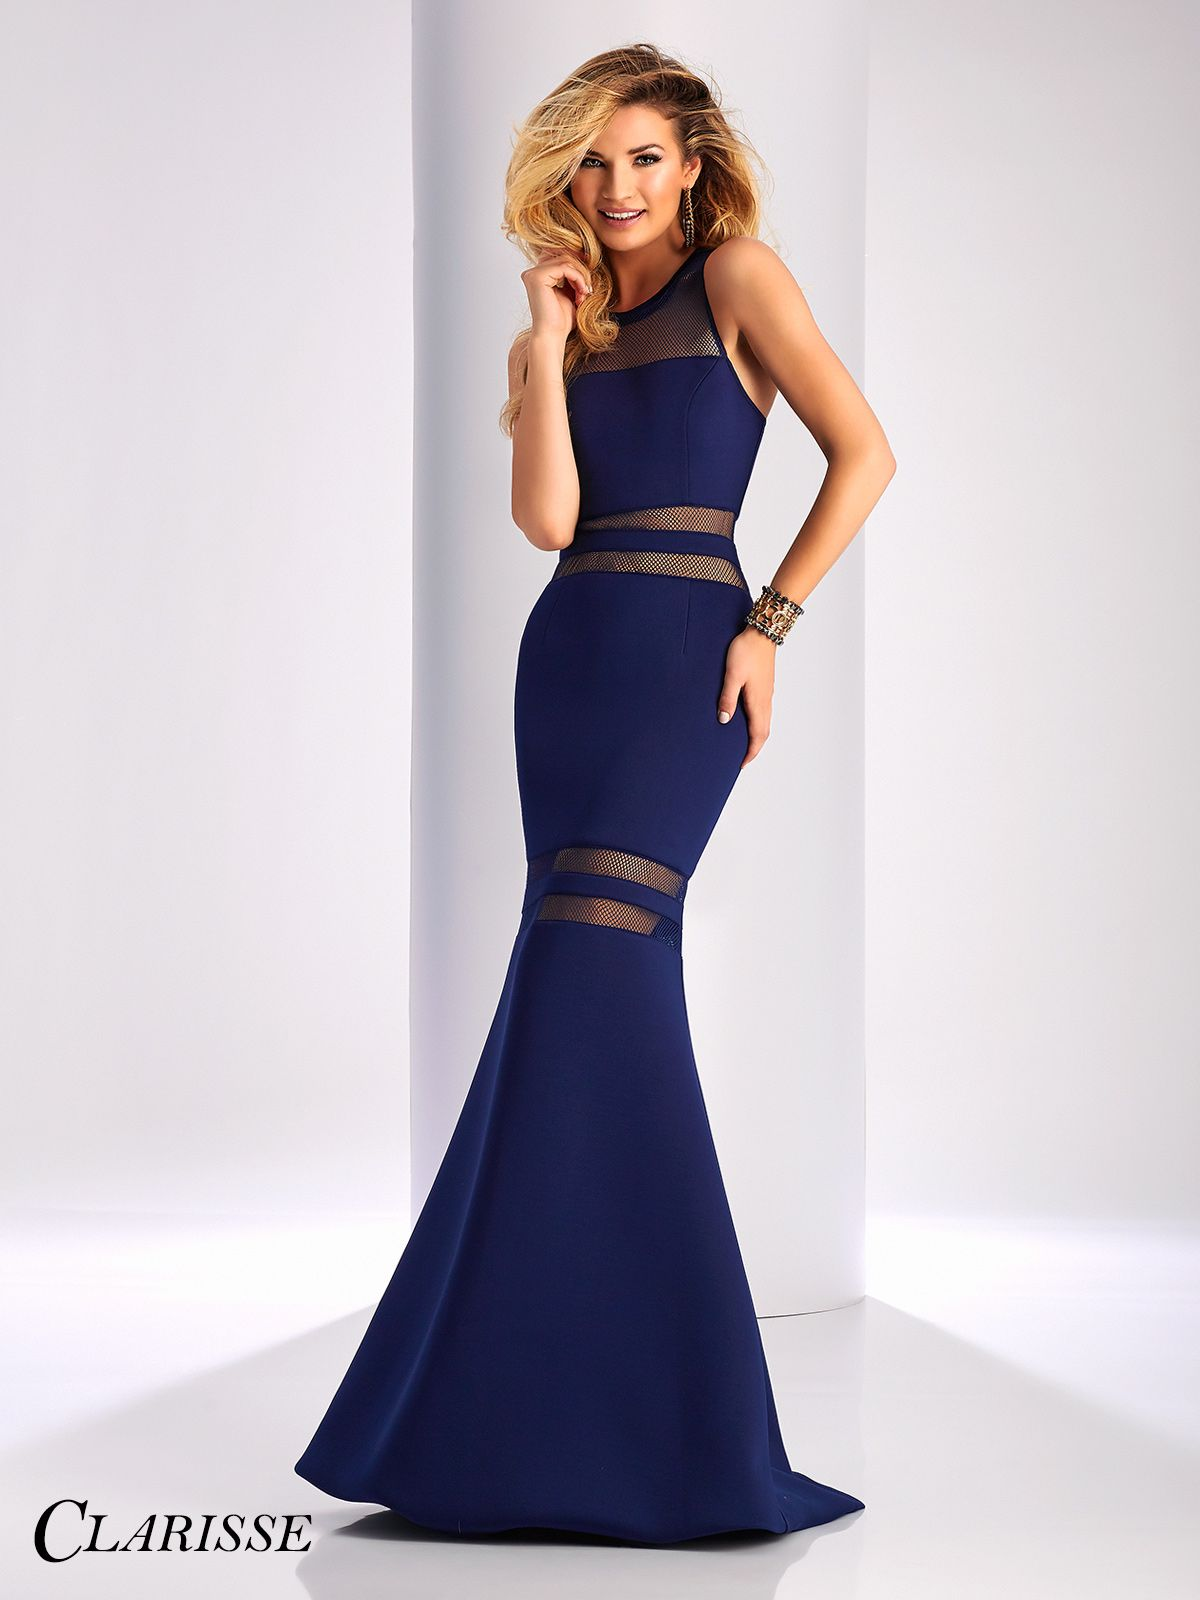 Clarisse mesh detail neoprene prom dress navy prom dresses